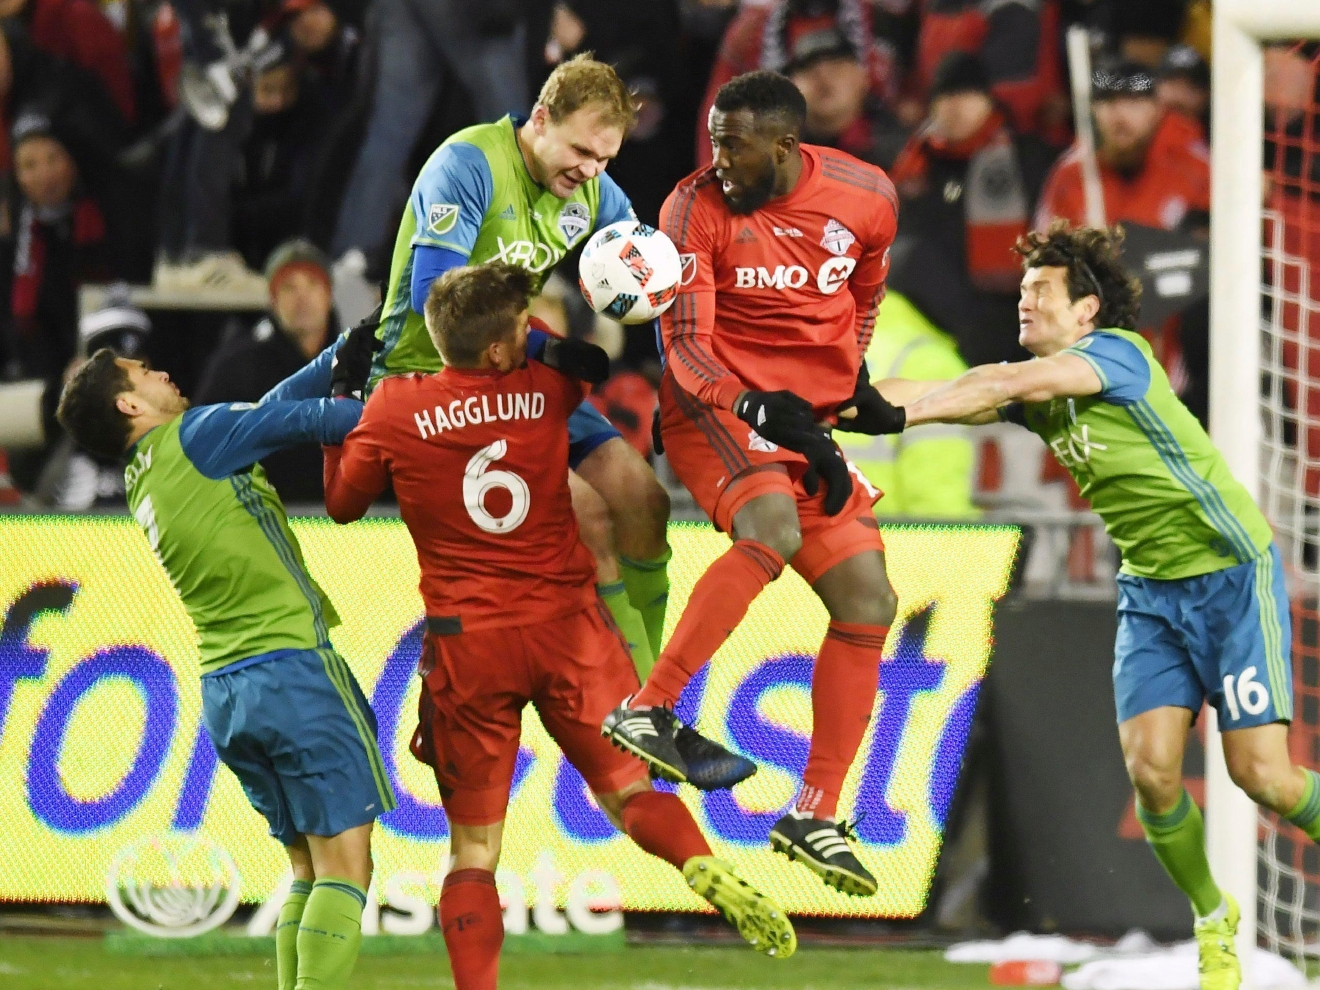 Toronto FC forward Jozy Altidore (17) and Seattle Sounders defender Chad Marshall (14) go up to head the ball as Toronto FC defender Nick Hagglund (6), Sounders midfielder Cristian Roldan (7) and forward Nelson Haedo Valdez (16) look on during second-half MLS Cup final soccer action in Toronto, Saturday, Dec. 10, 2016. (Frank Gunn/The Canadian Press via AP)